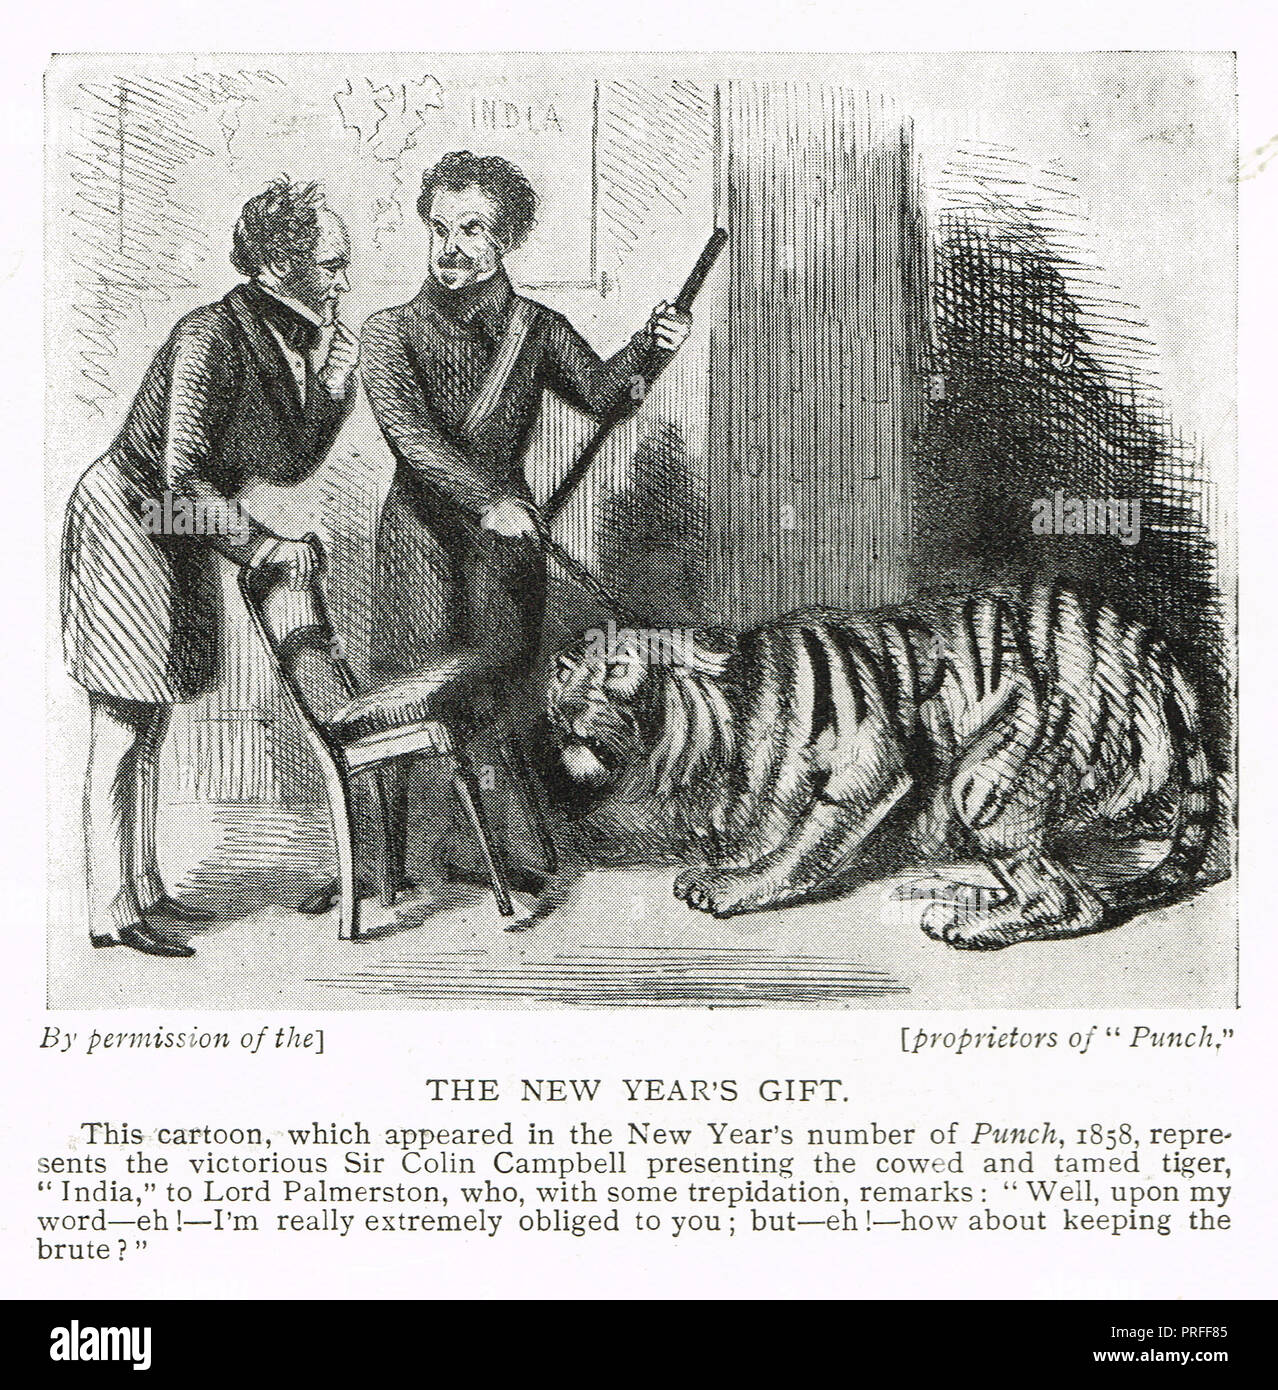 Punch cartoon with , with Lord Palmerston, Sir Colin Campbell, referencing the Sepoy Mutiny of 1857, entitled  the new year's gift, India is represented by a cowed tiger - Stock Image